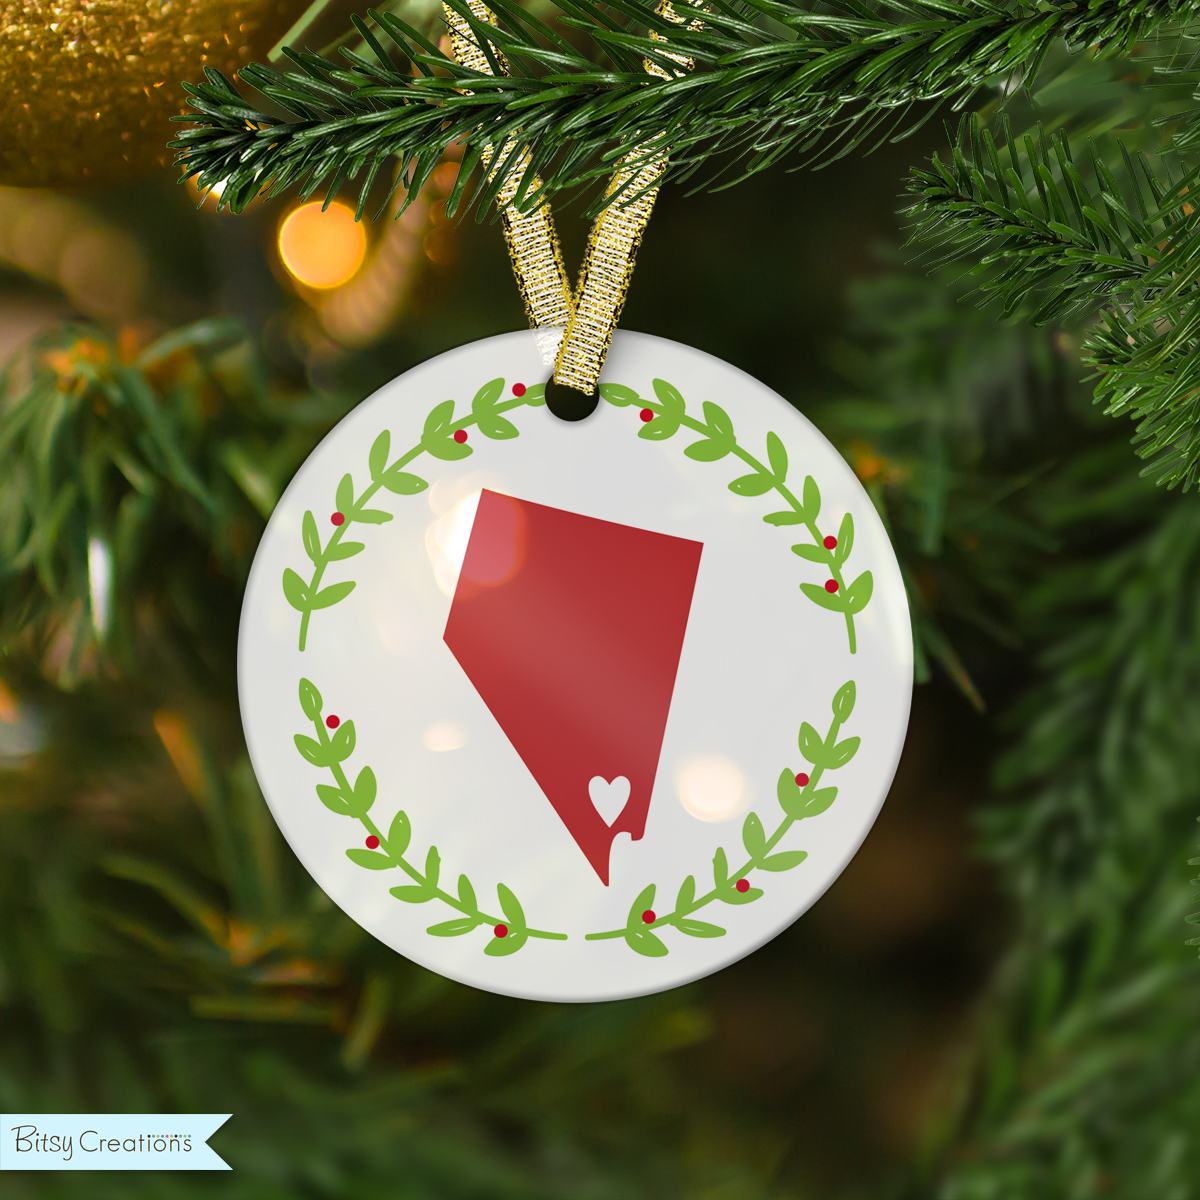 Christmas Ornaments Online Shopping Europe: Custom State Ornament